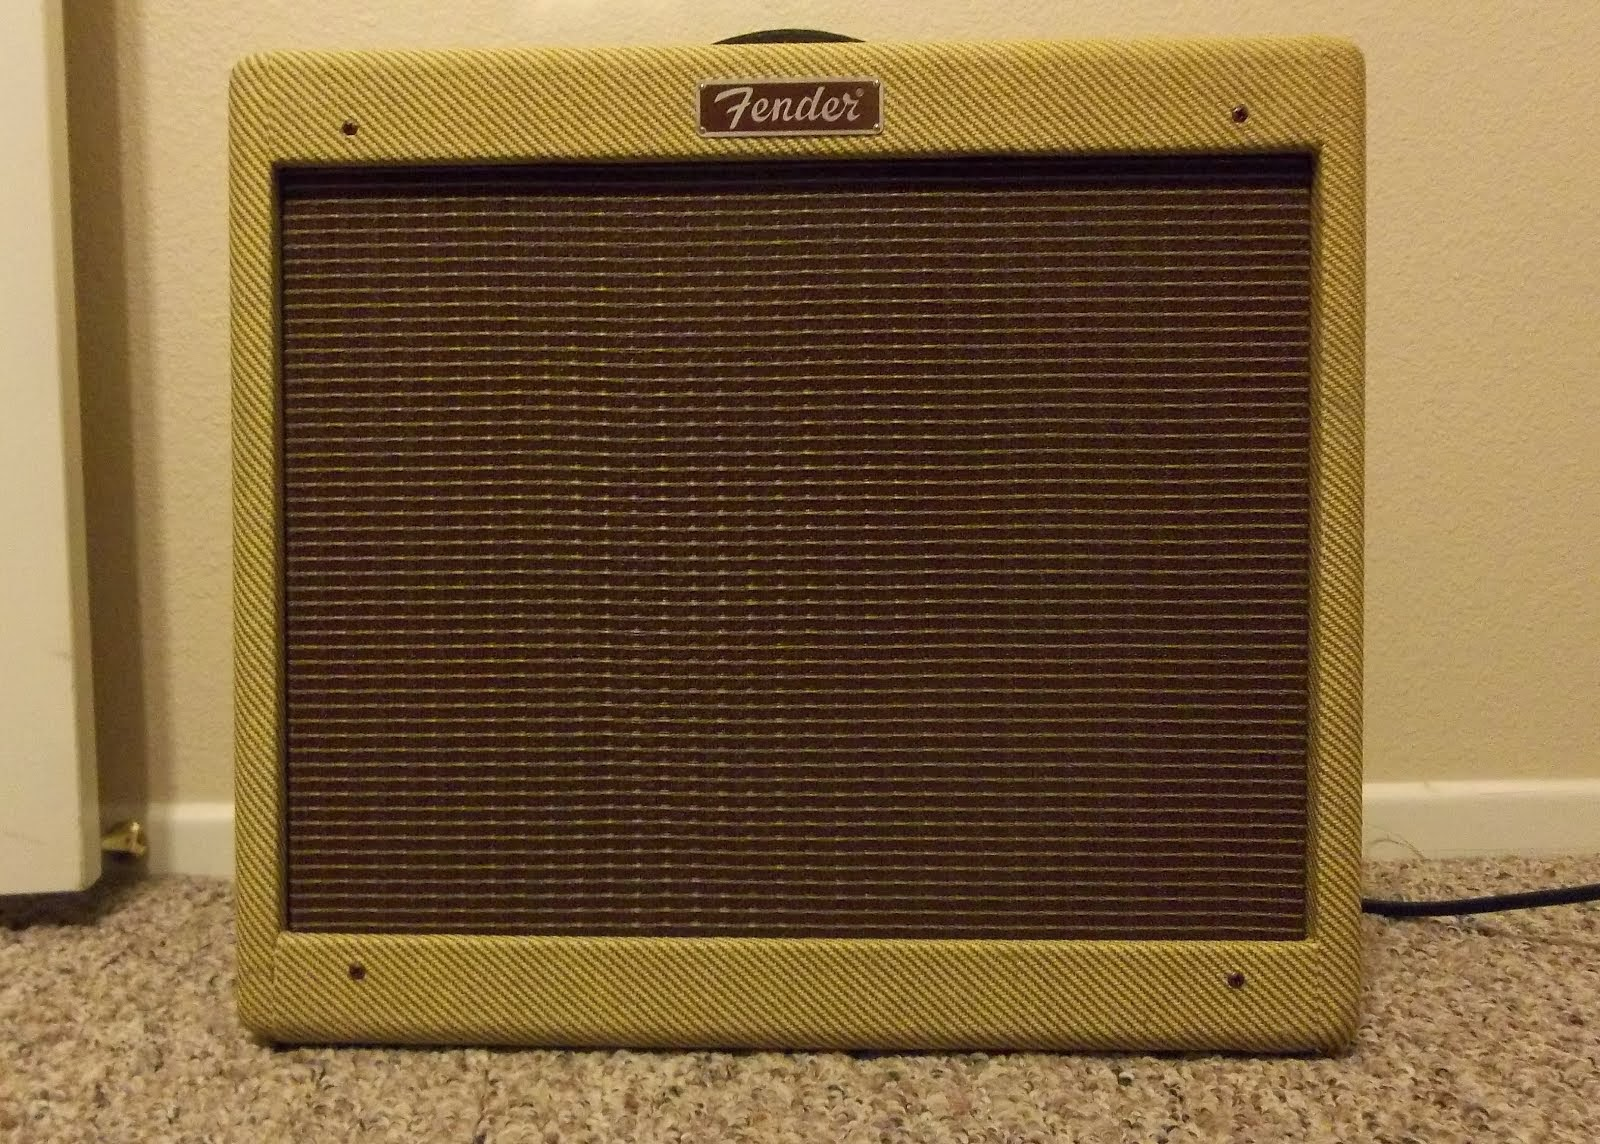 Fender Blues Jr NOS (Tweed Version)